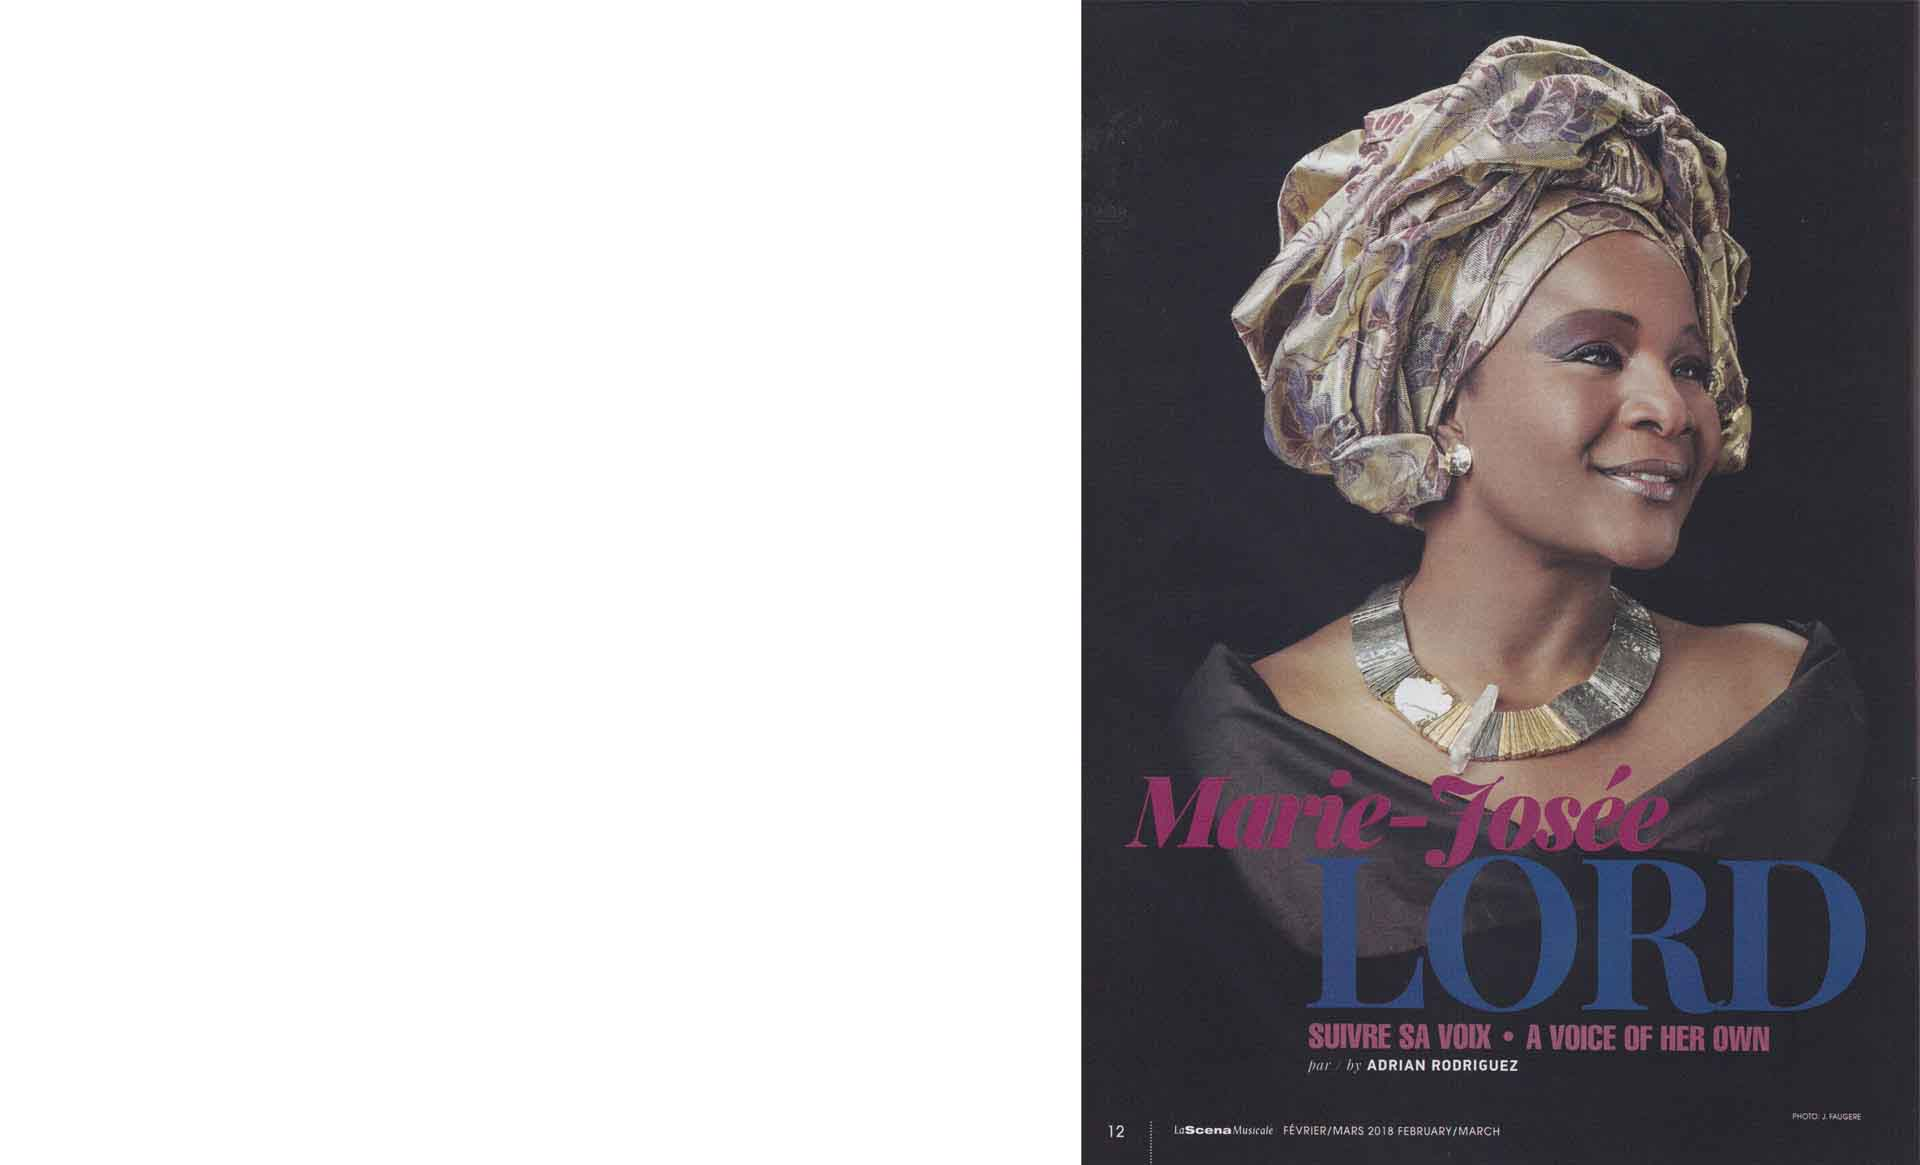 Marie-Josée Lord sporting a unique piece by Anne-Marie Chagnon, in the magazine La Scena Musicale